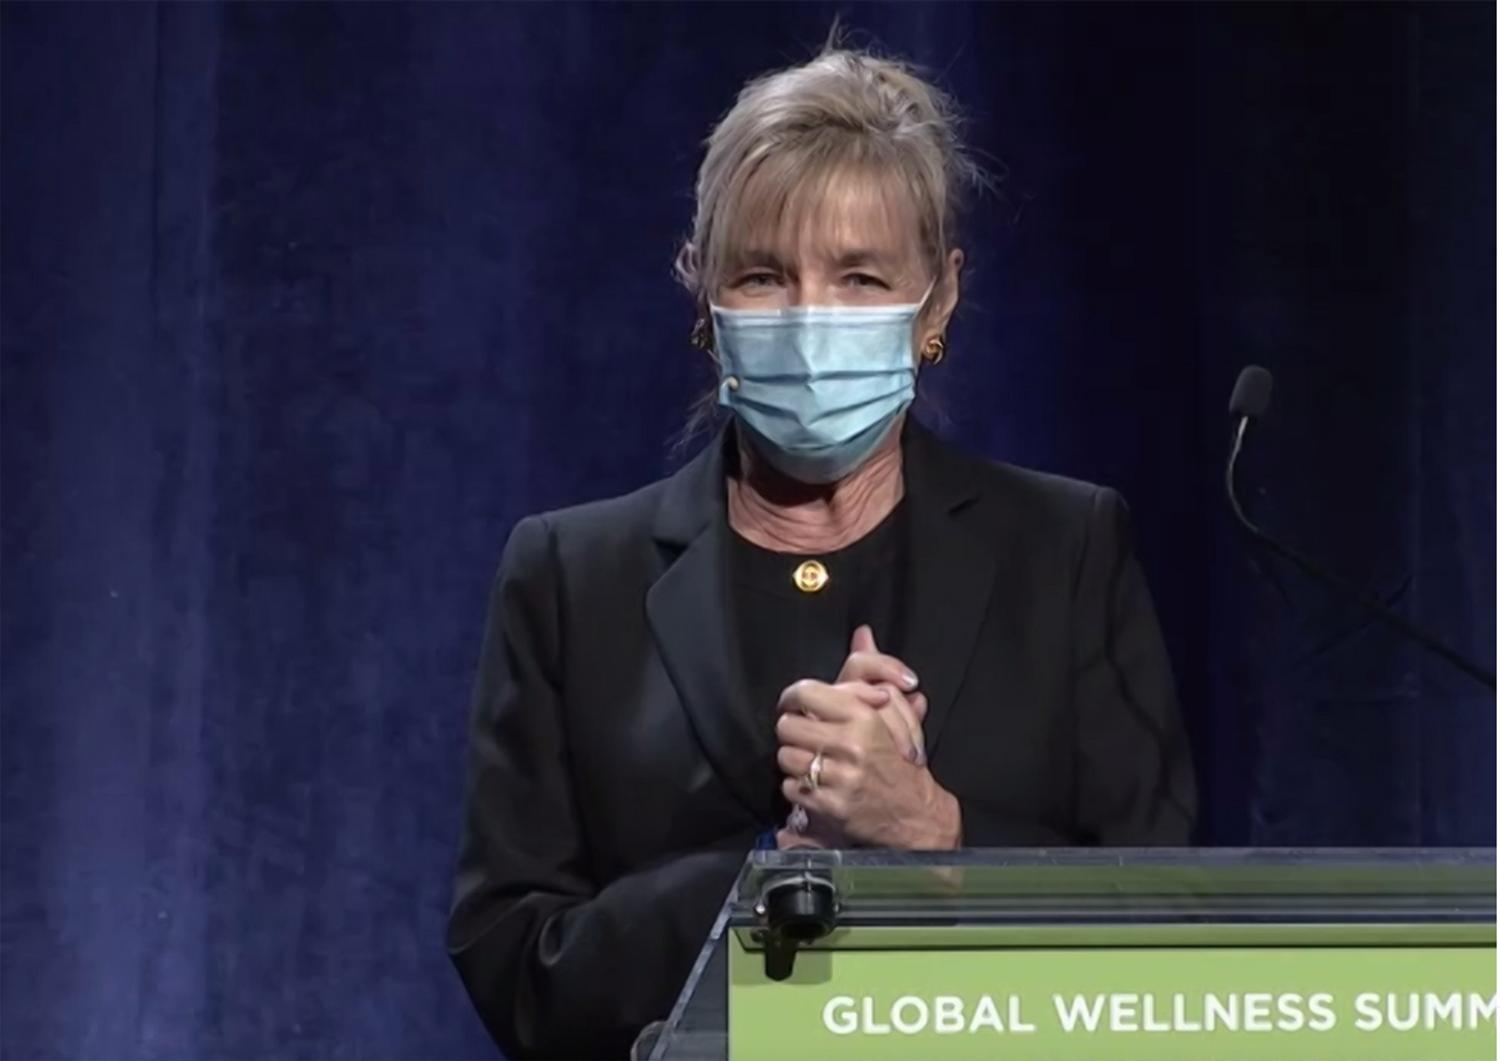 Susie Ellis provided a live update about the Wellness Moonshot initiative from the 2020 Global Wellness Summit / Global Wellness Summit